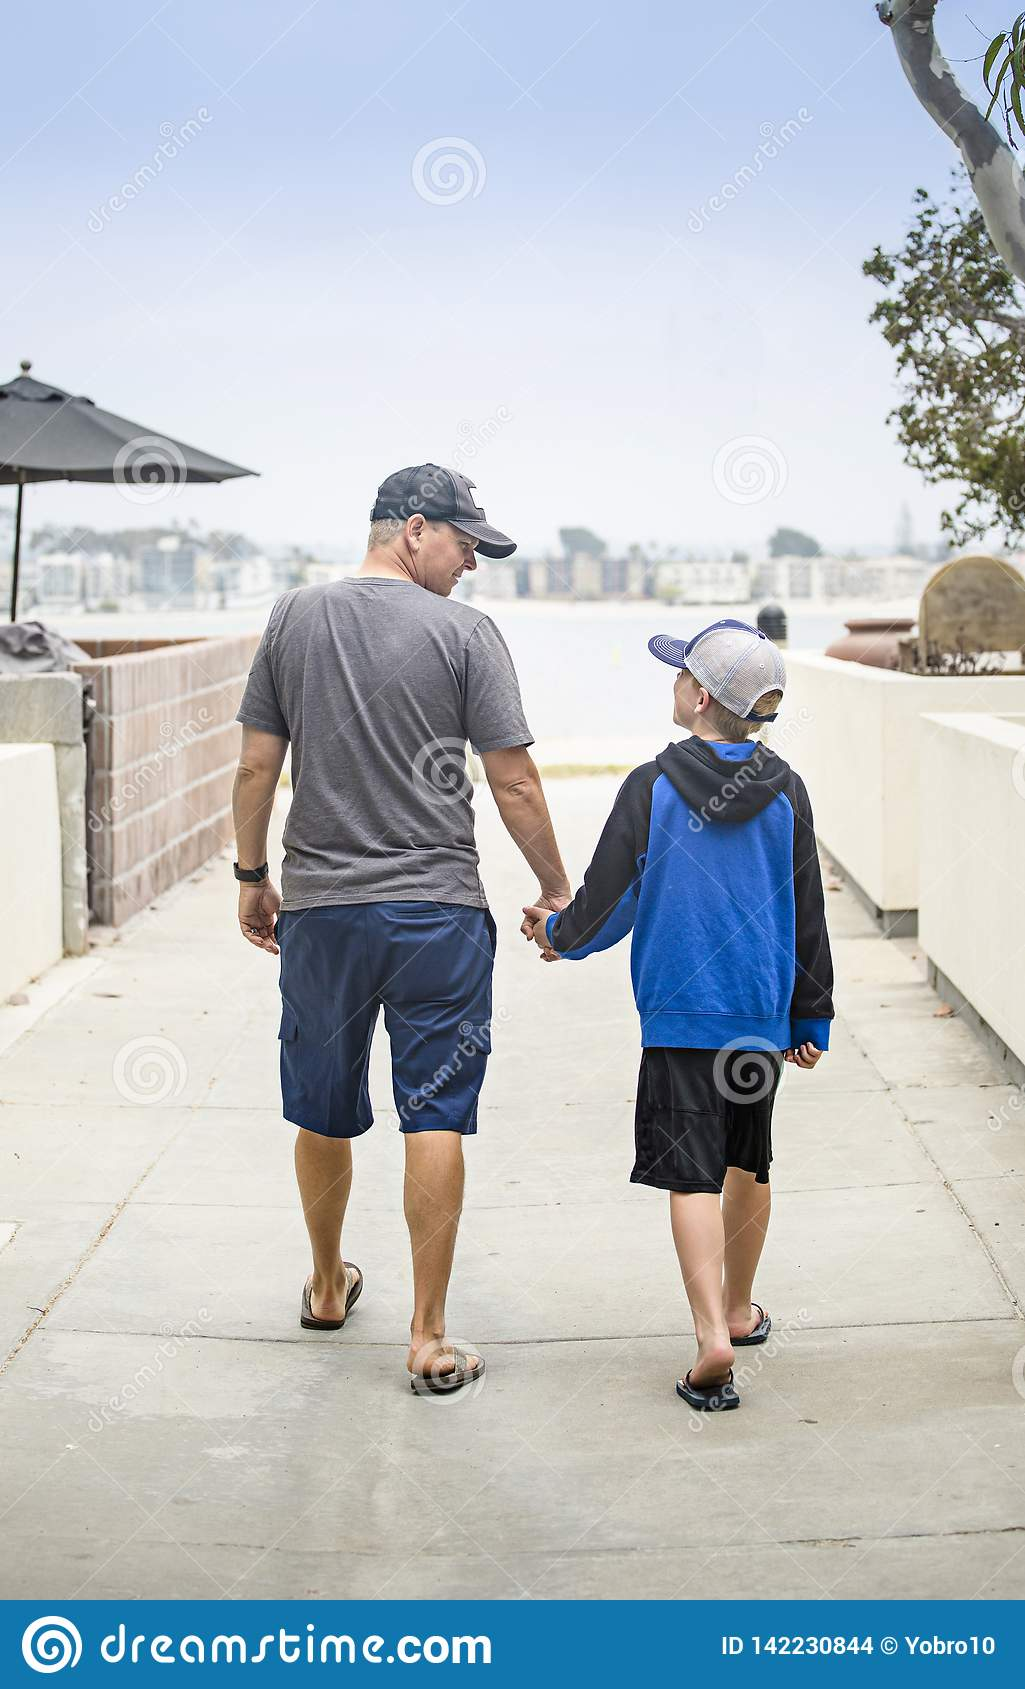 Father and Son walking hand in hand together on the sidewalk